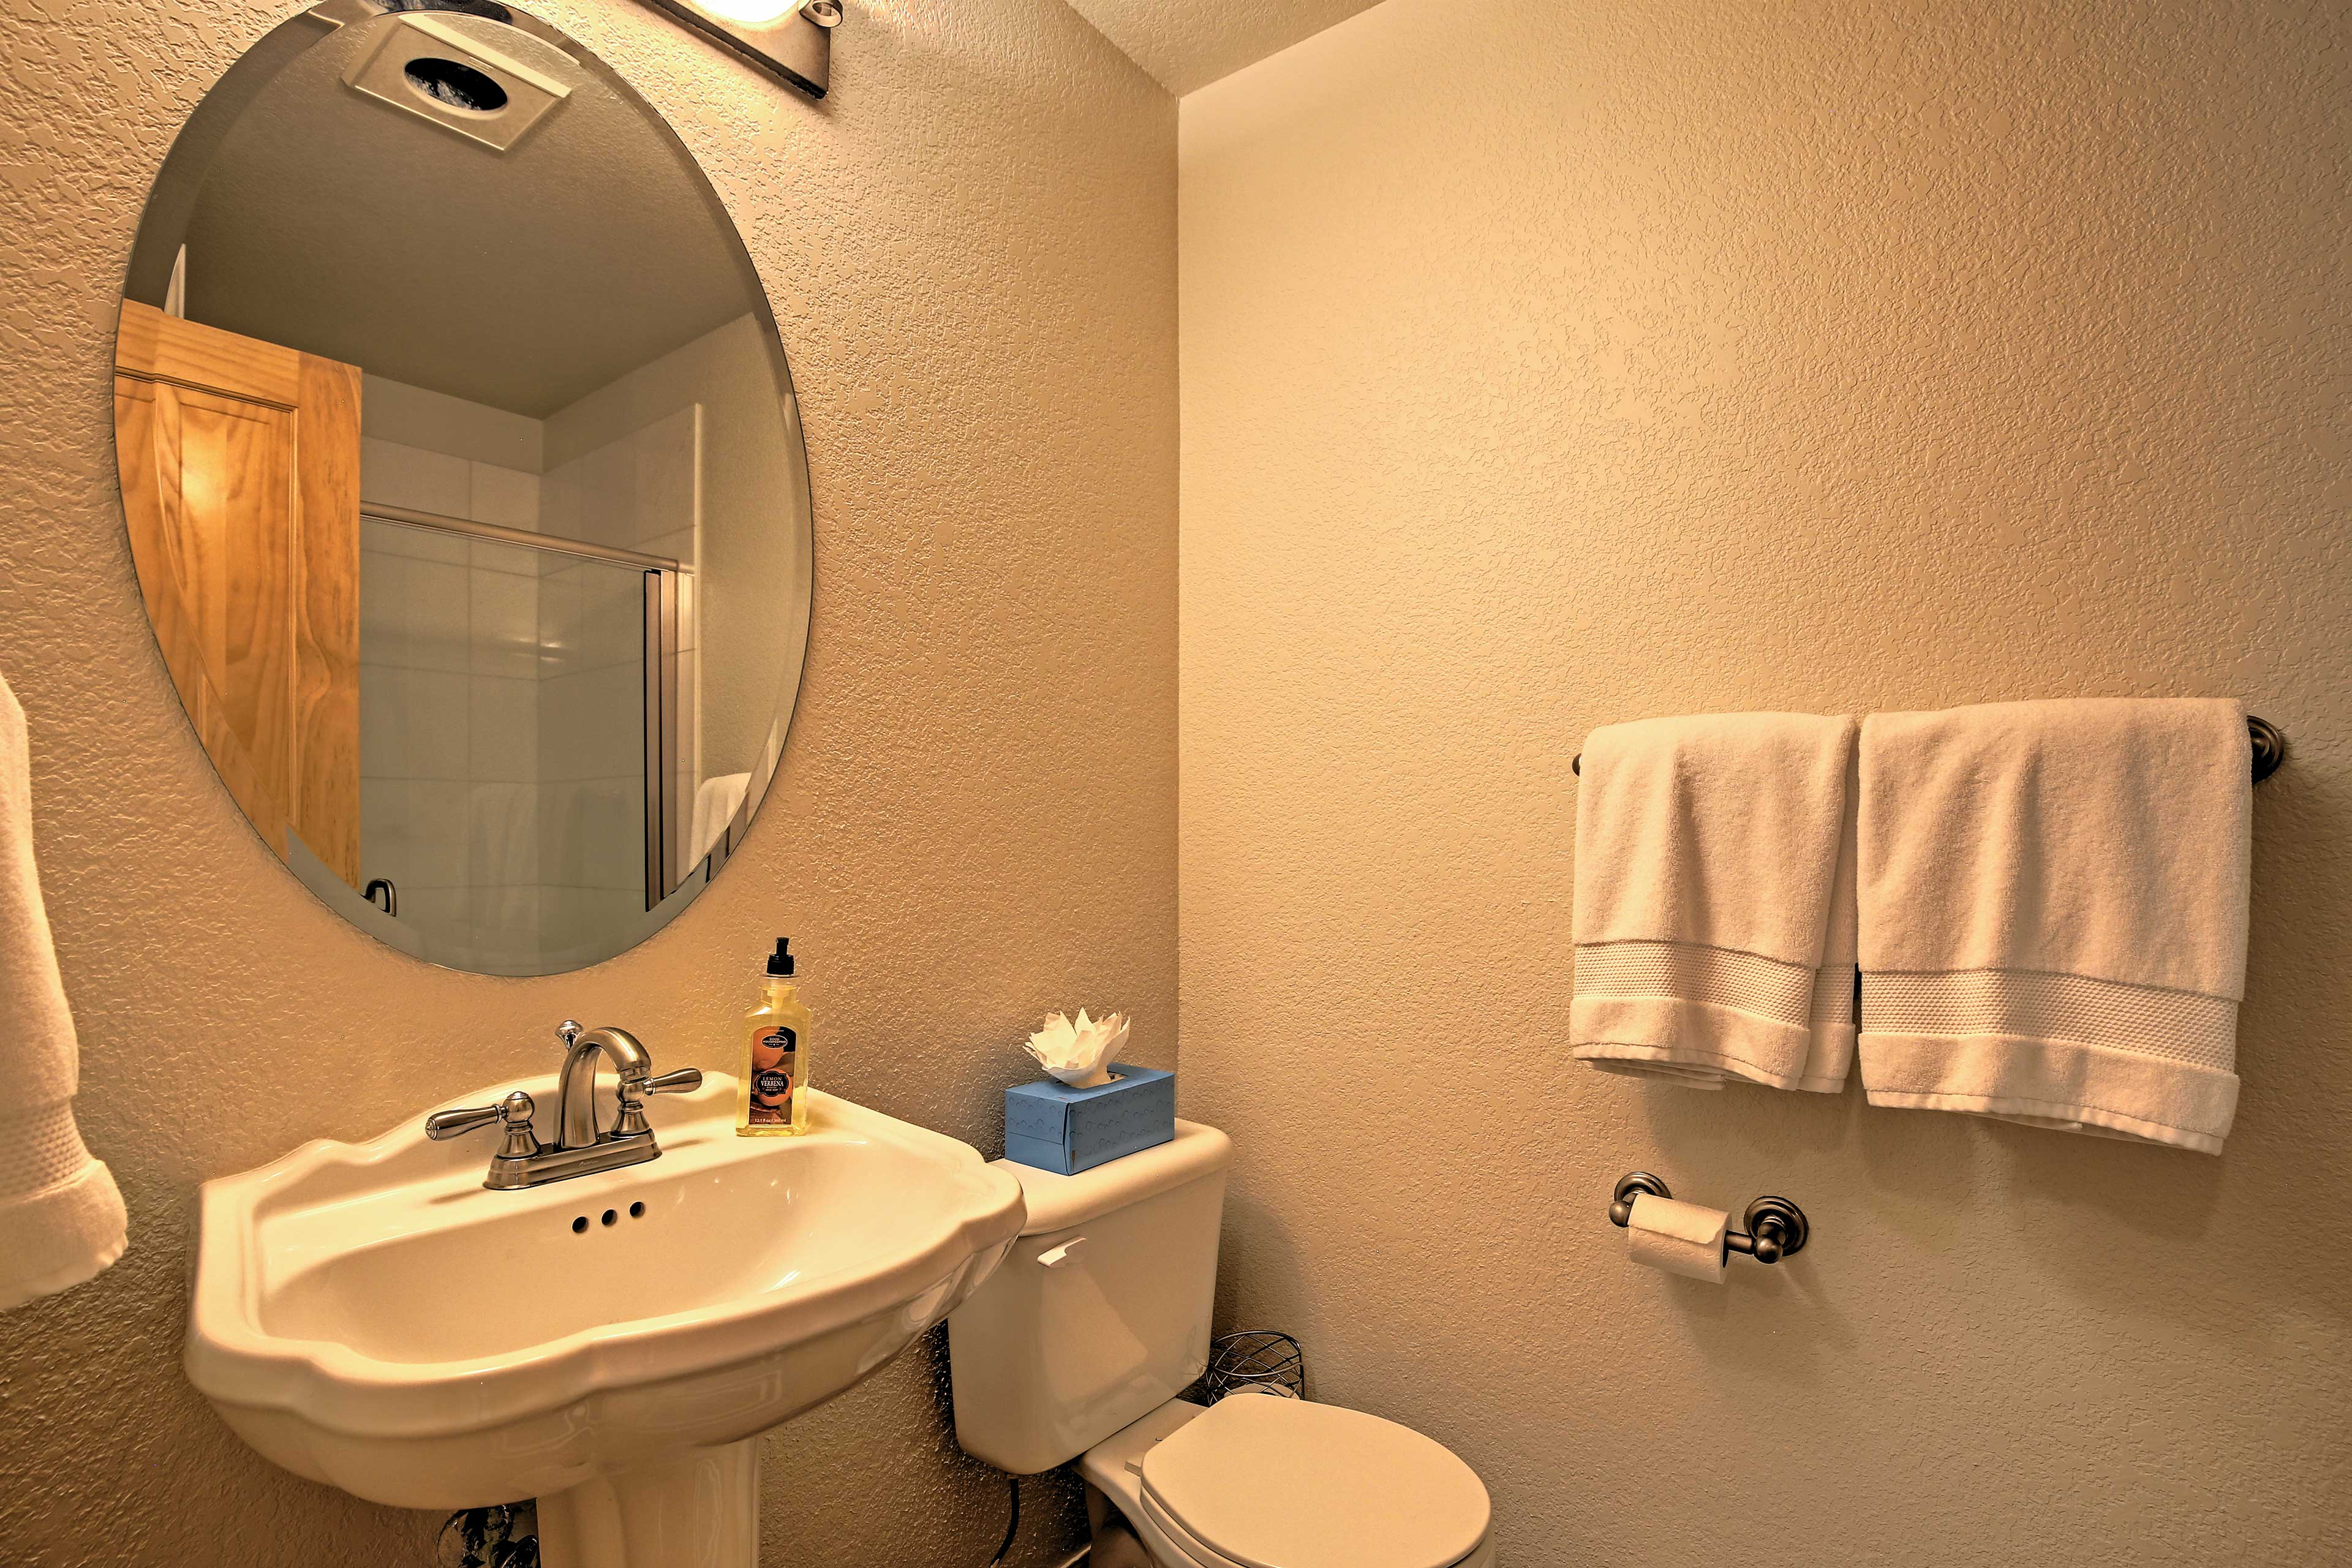 The home is equipped with 4 full bathrooms, providing lots of space for everyone.